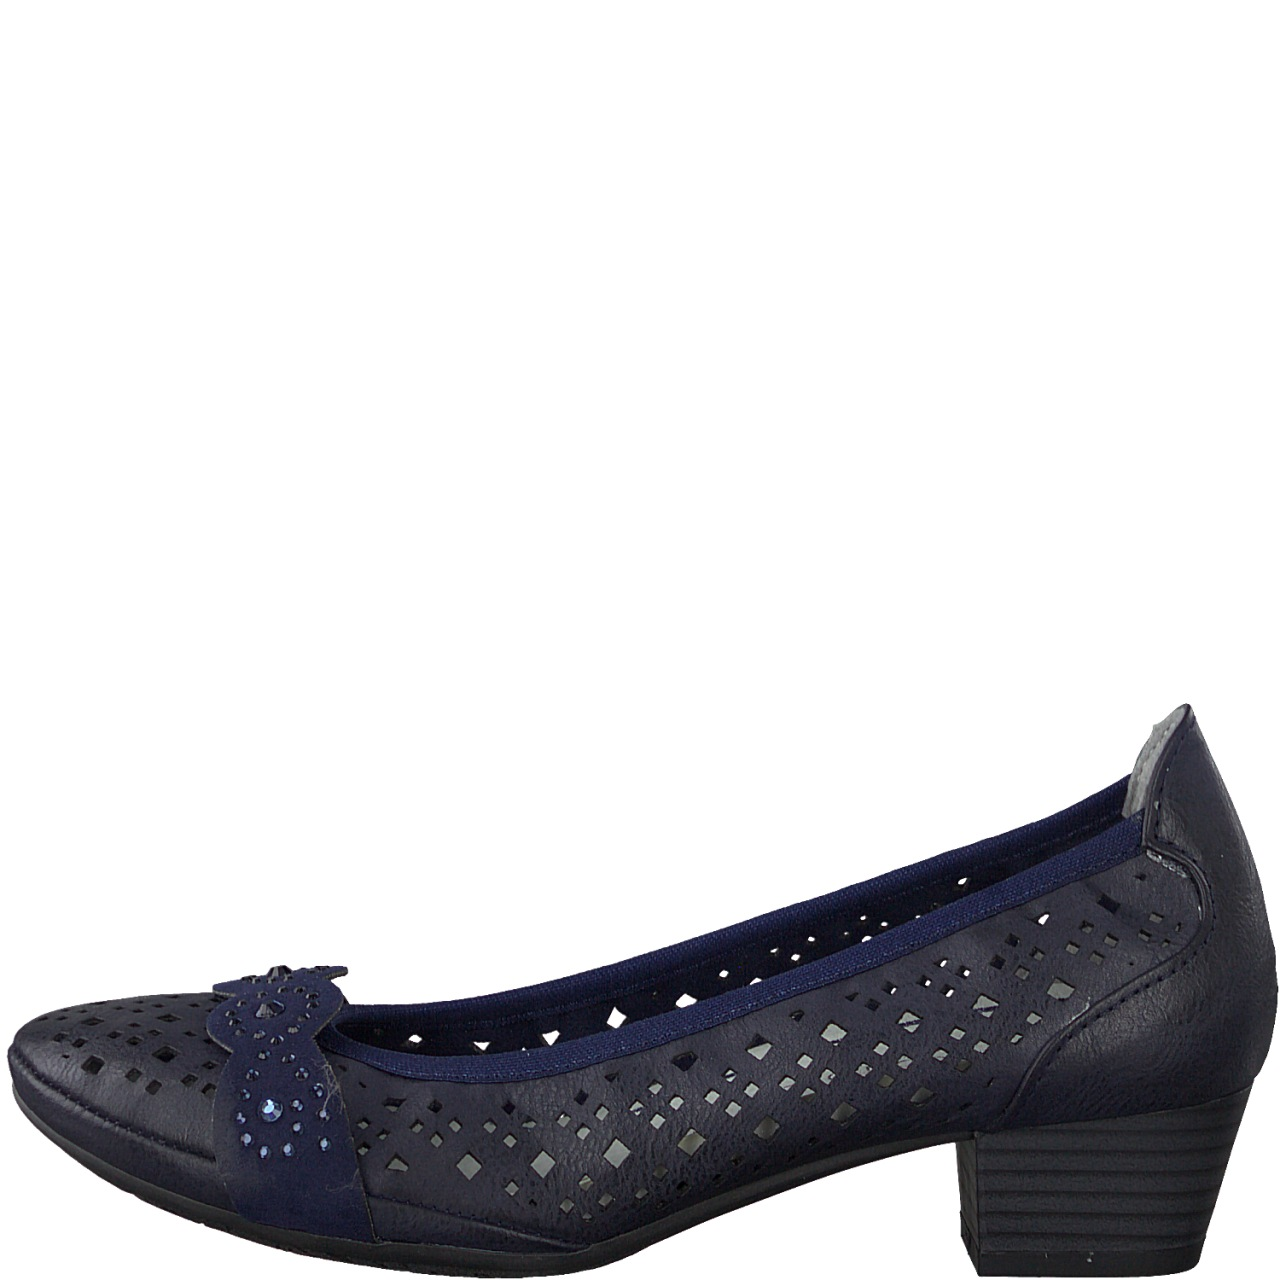 Berwick upon Tweed-Lime Shoe Co-Marco Tozzi-Blue-Court shoe-punched detail-navy-heel-spring-summer